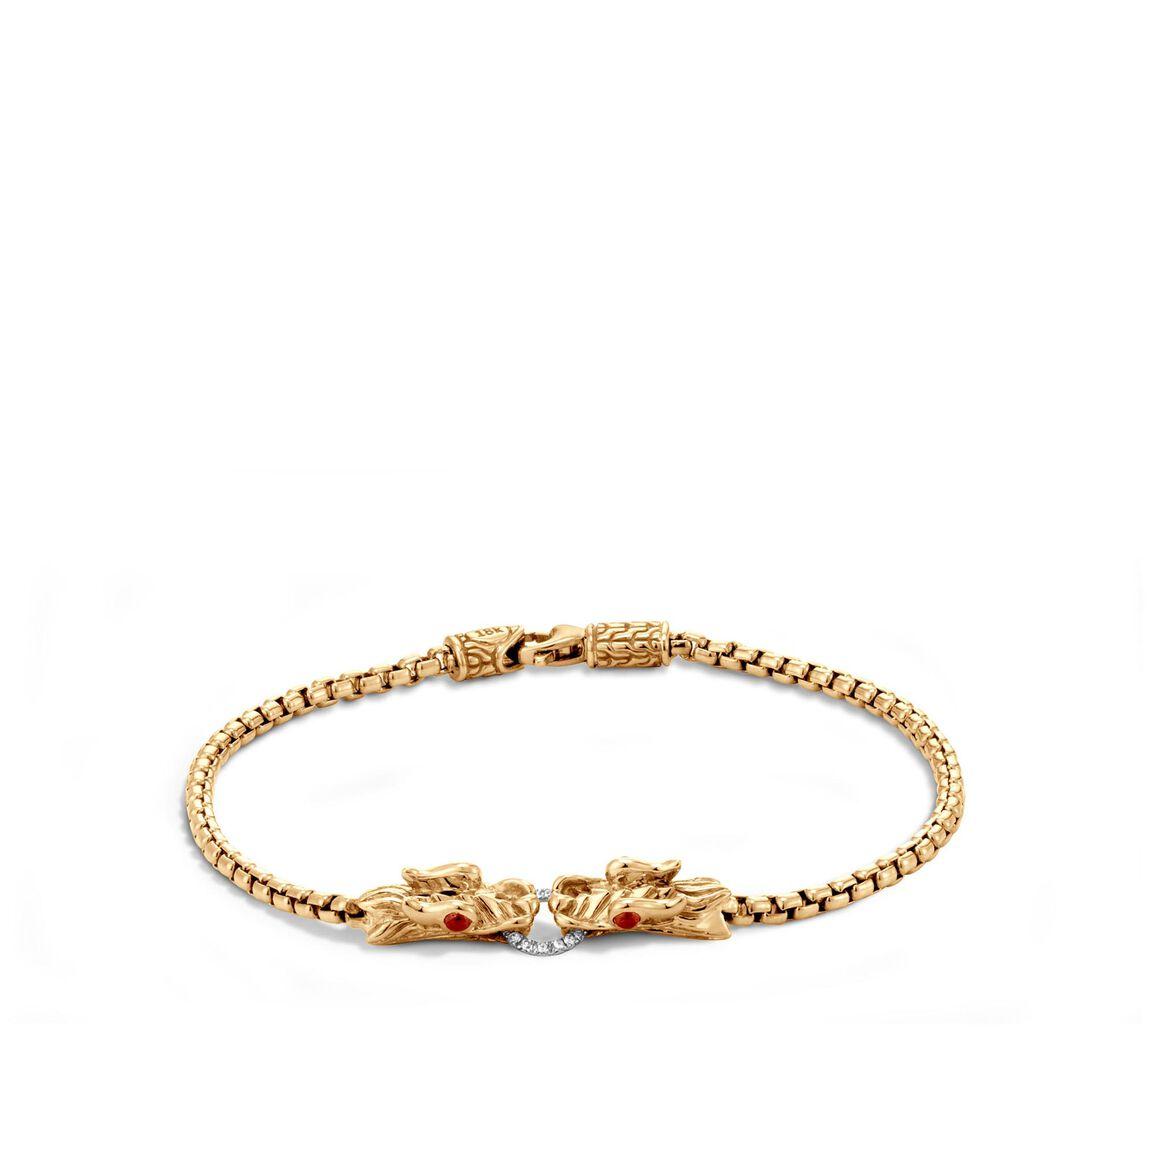 Legends Naga 2.5MM Station Bracelet in 18K Gold with Diamonds